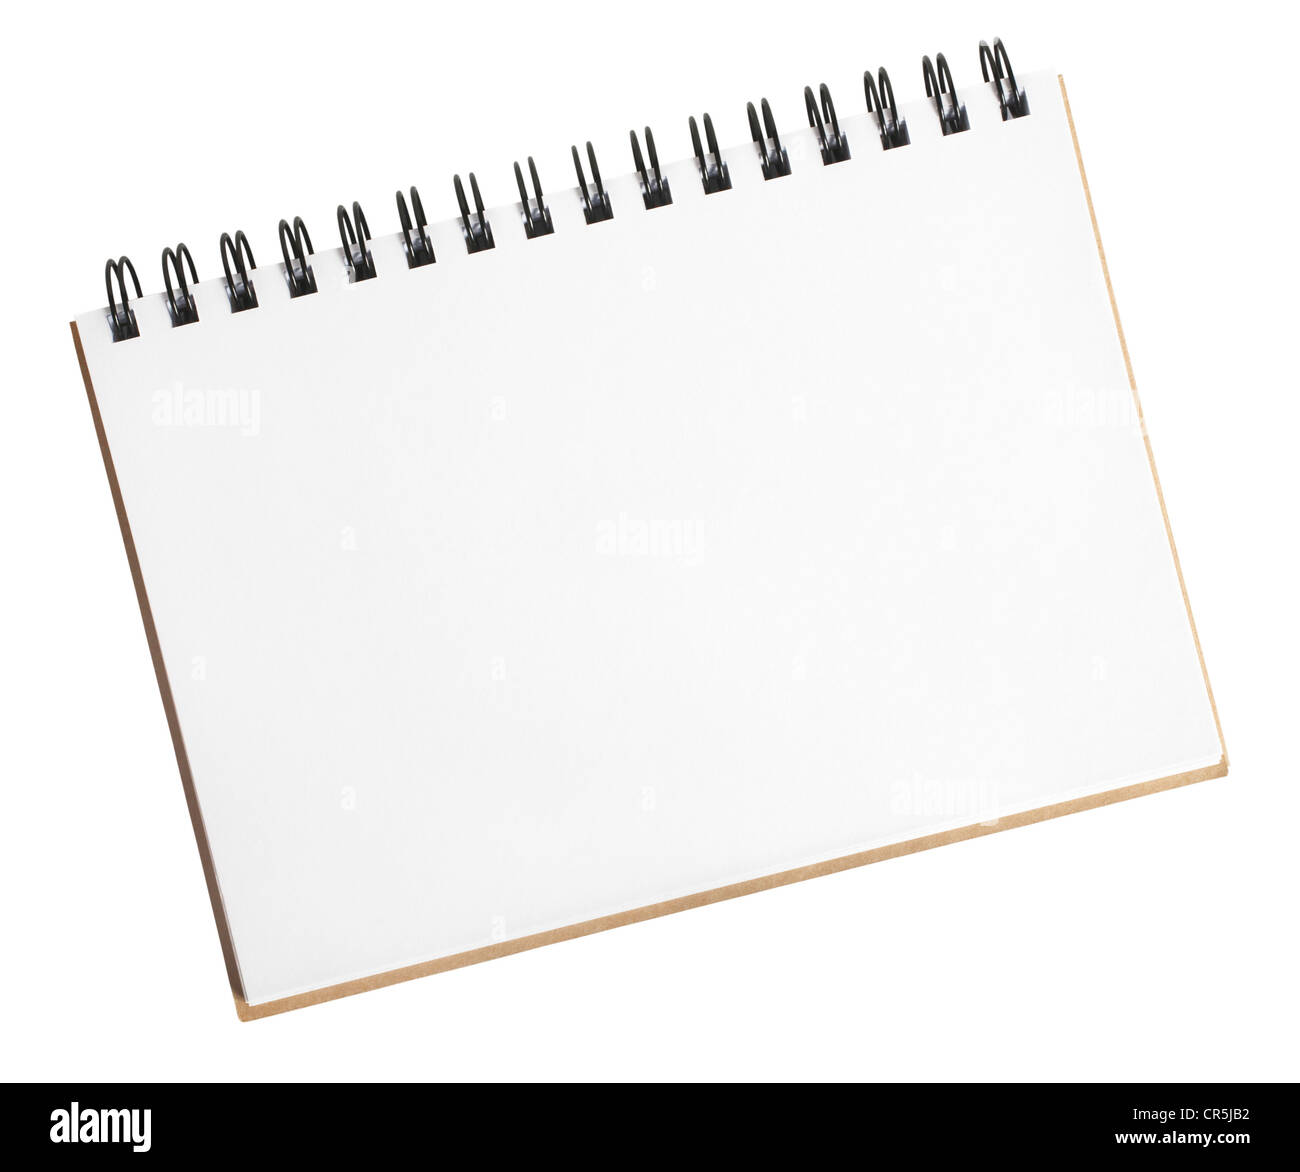 Small spiral back sketch pad open and ready for your drawing - Stock Image